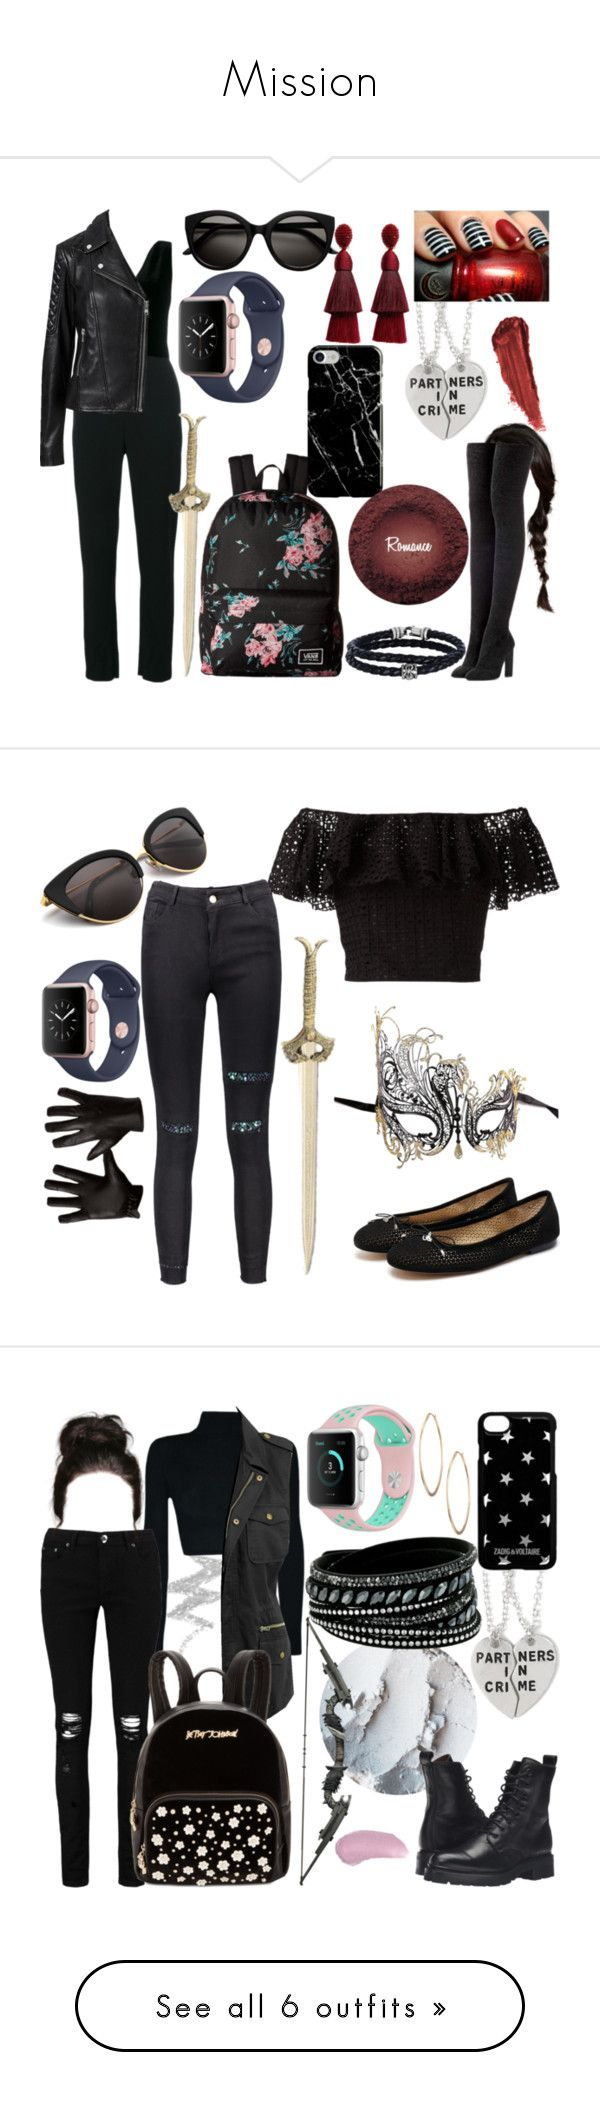 """""""Mission"""" by qwertyuiop-sparta ❤ liked on Polyvore featuring Elie Saab, Vans, adidas Originals, Witchery, Recover, Oscar de la Renta, By Terry, Phillip Gavriel, back and Philosophy di Lorenzo Serafini"""